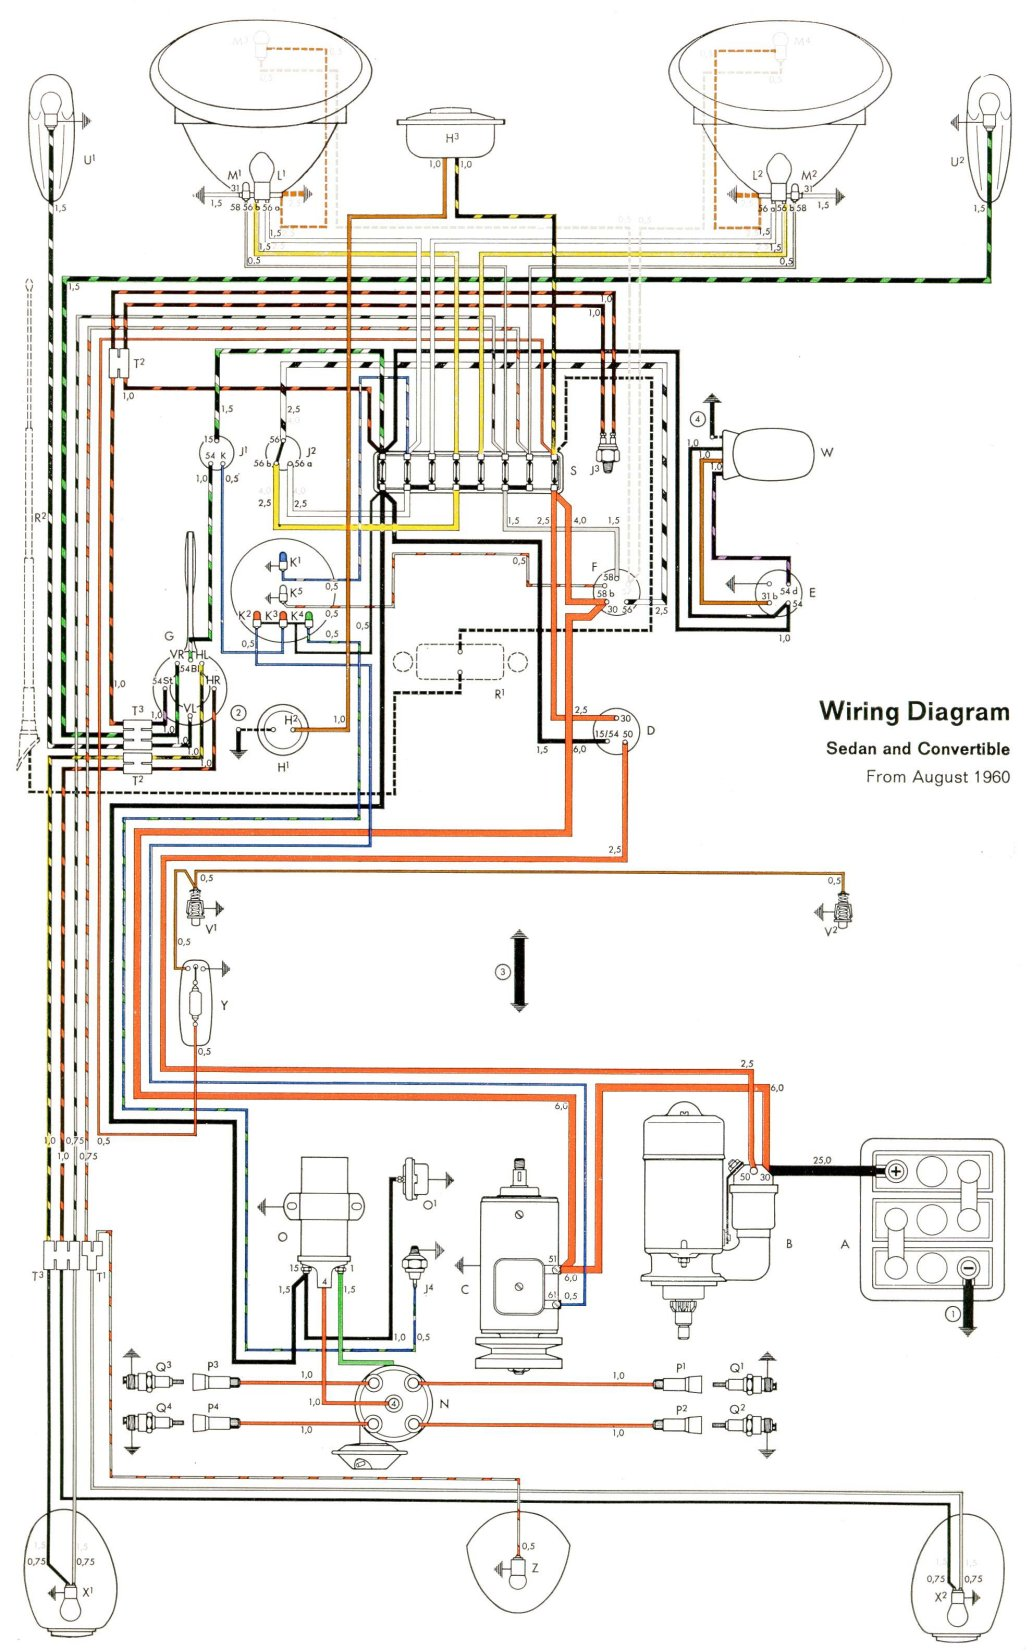 hight resolution of thesamba com type 1 wiring diagrams 1974 vw beetle alternator wiring diagram 1974 vw wiring diagram